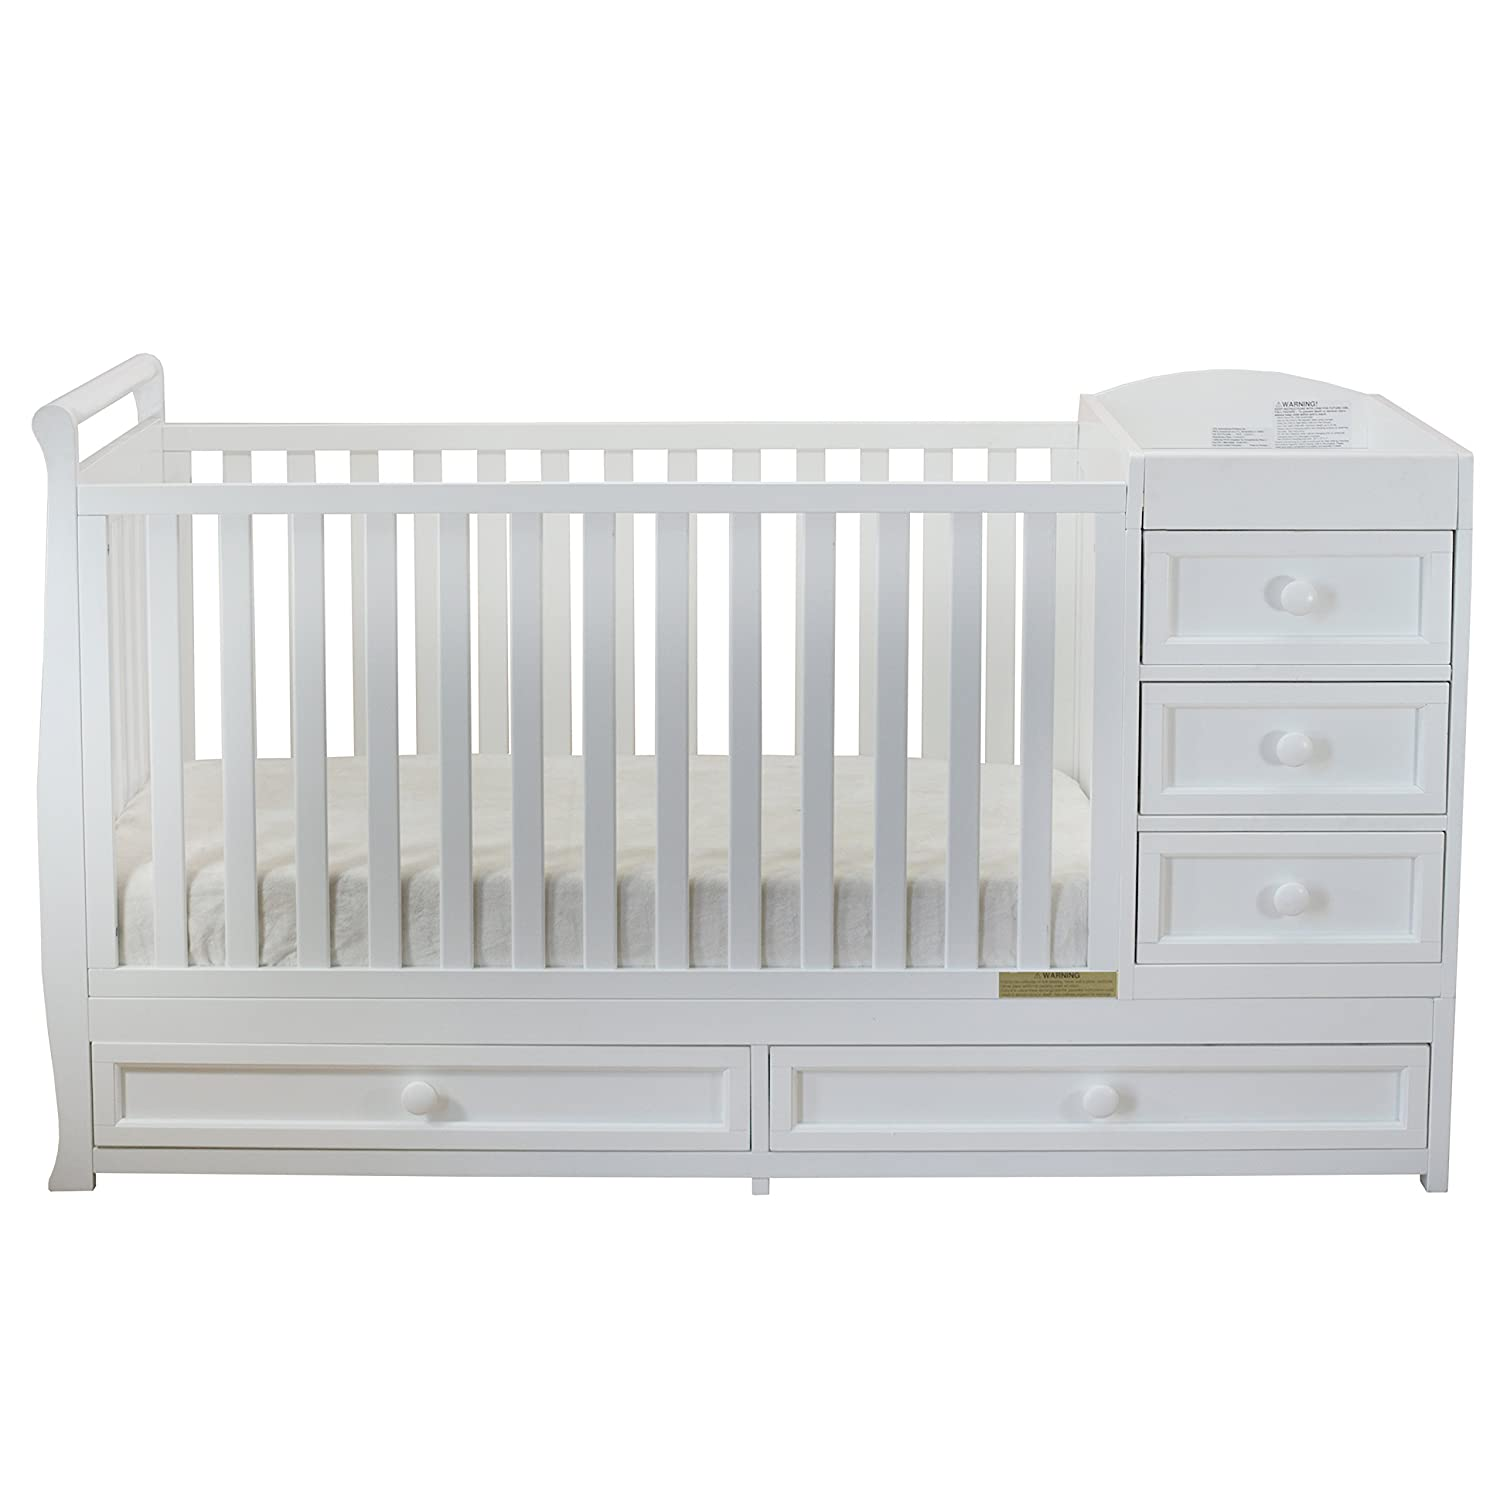 home sets dresser view and l table leila afg baby changing set larger athena cribs design with crib